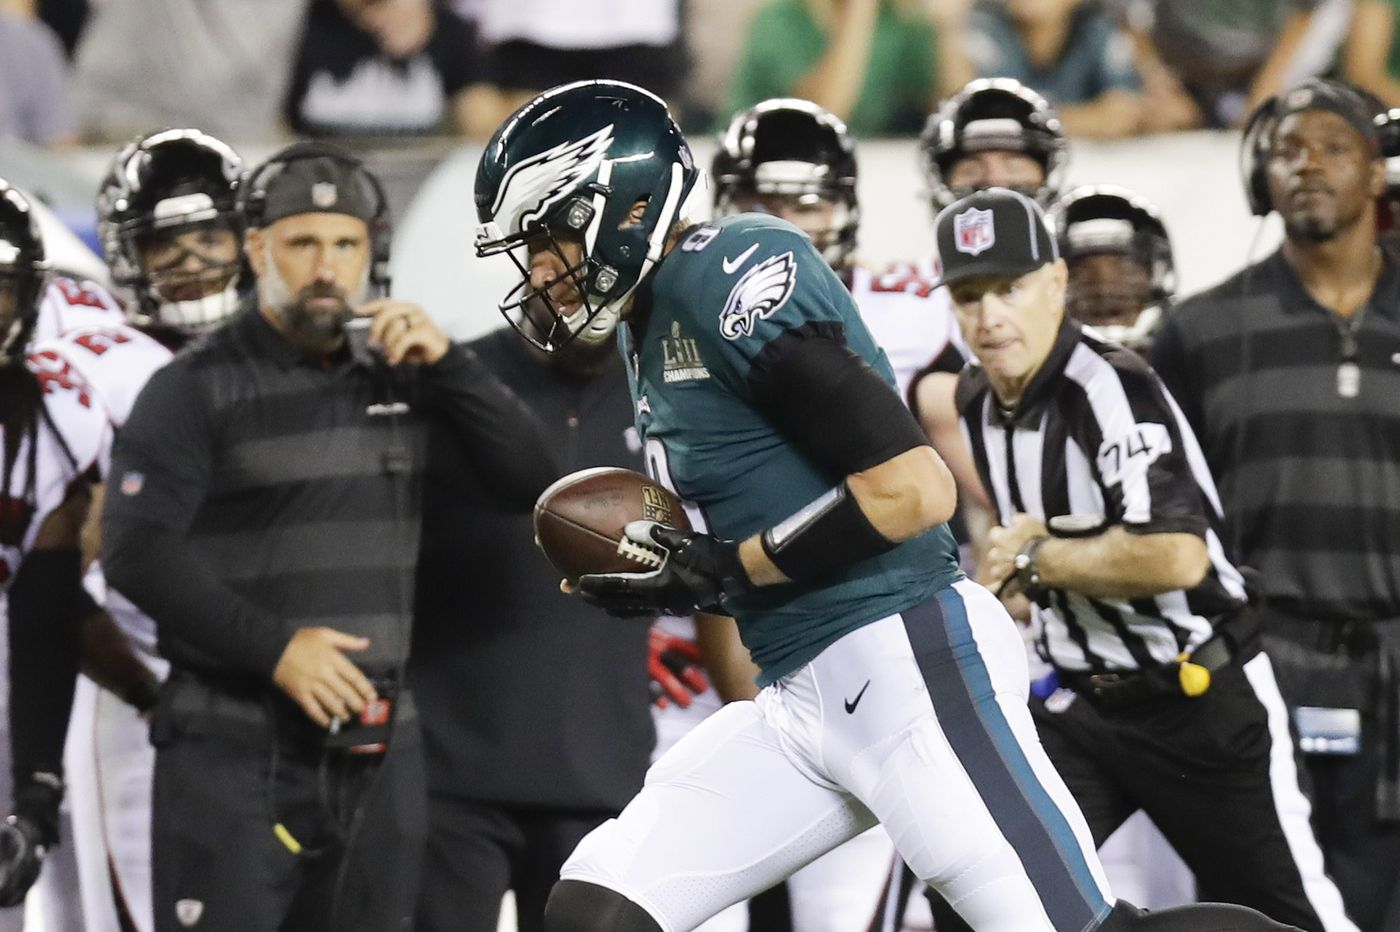 Eagles' Philly Special sequel wasn't as dramatic as in Super Bowl, but it was a hit | Marcus Hayes